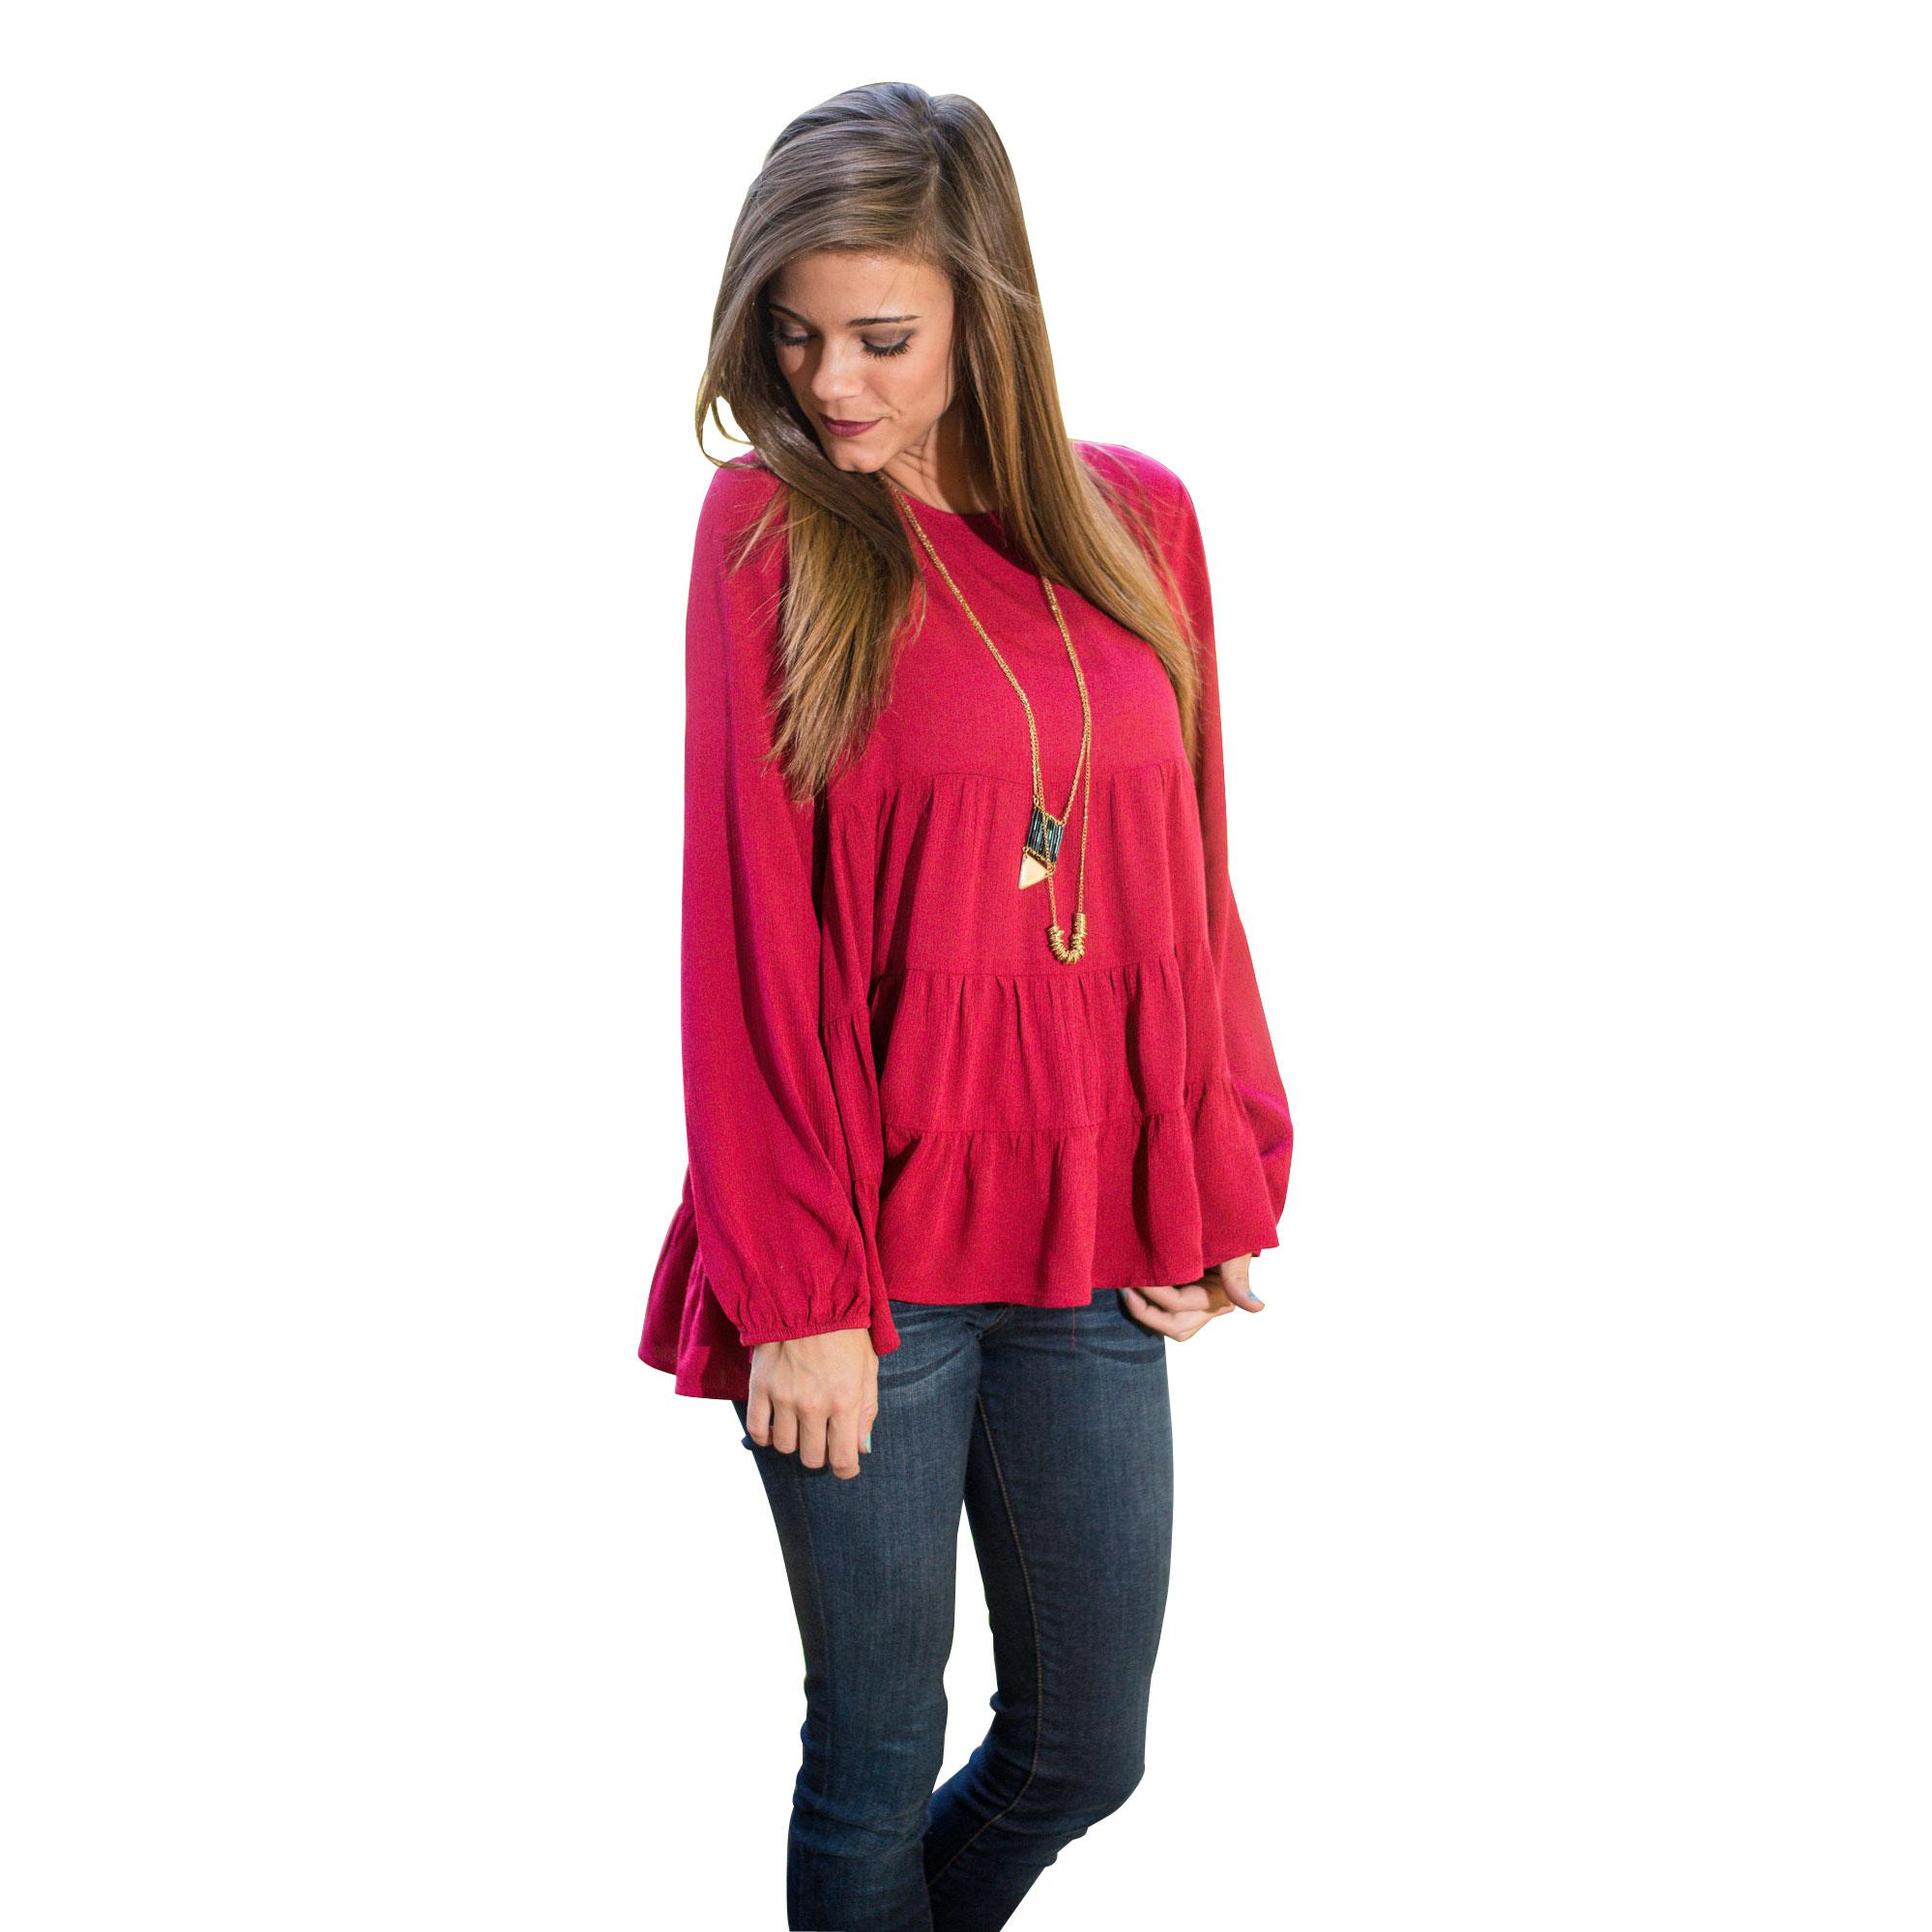 2016 Spring Fashion New Women Blouses Tops Europe Selling Pleated Chiffon Women Long Sleeve Shirts Red Loose Blouses Winter for Women